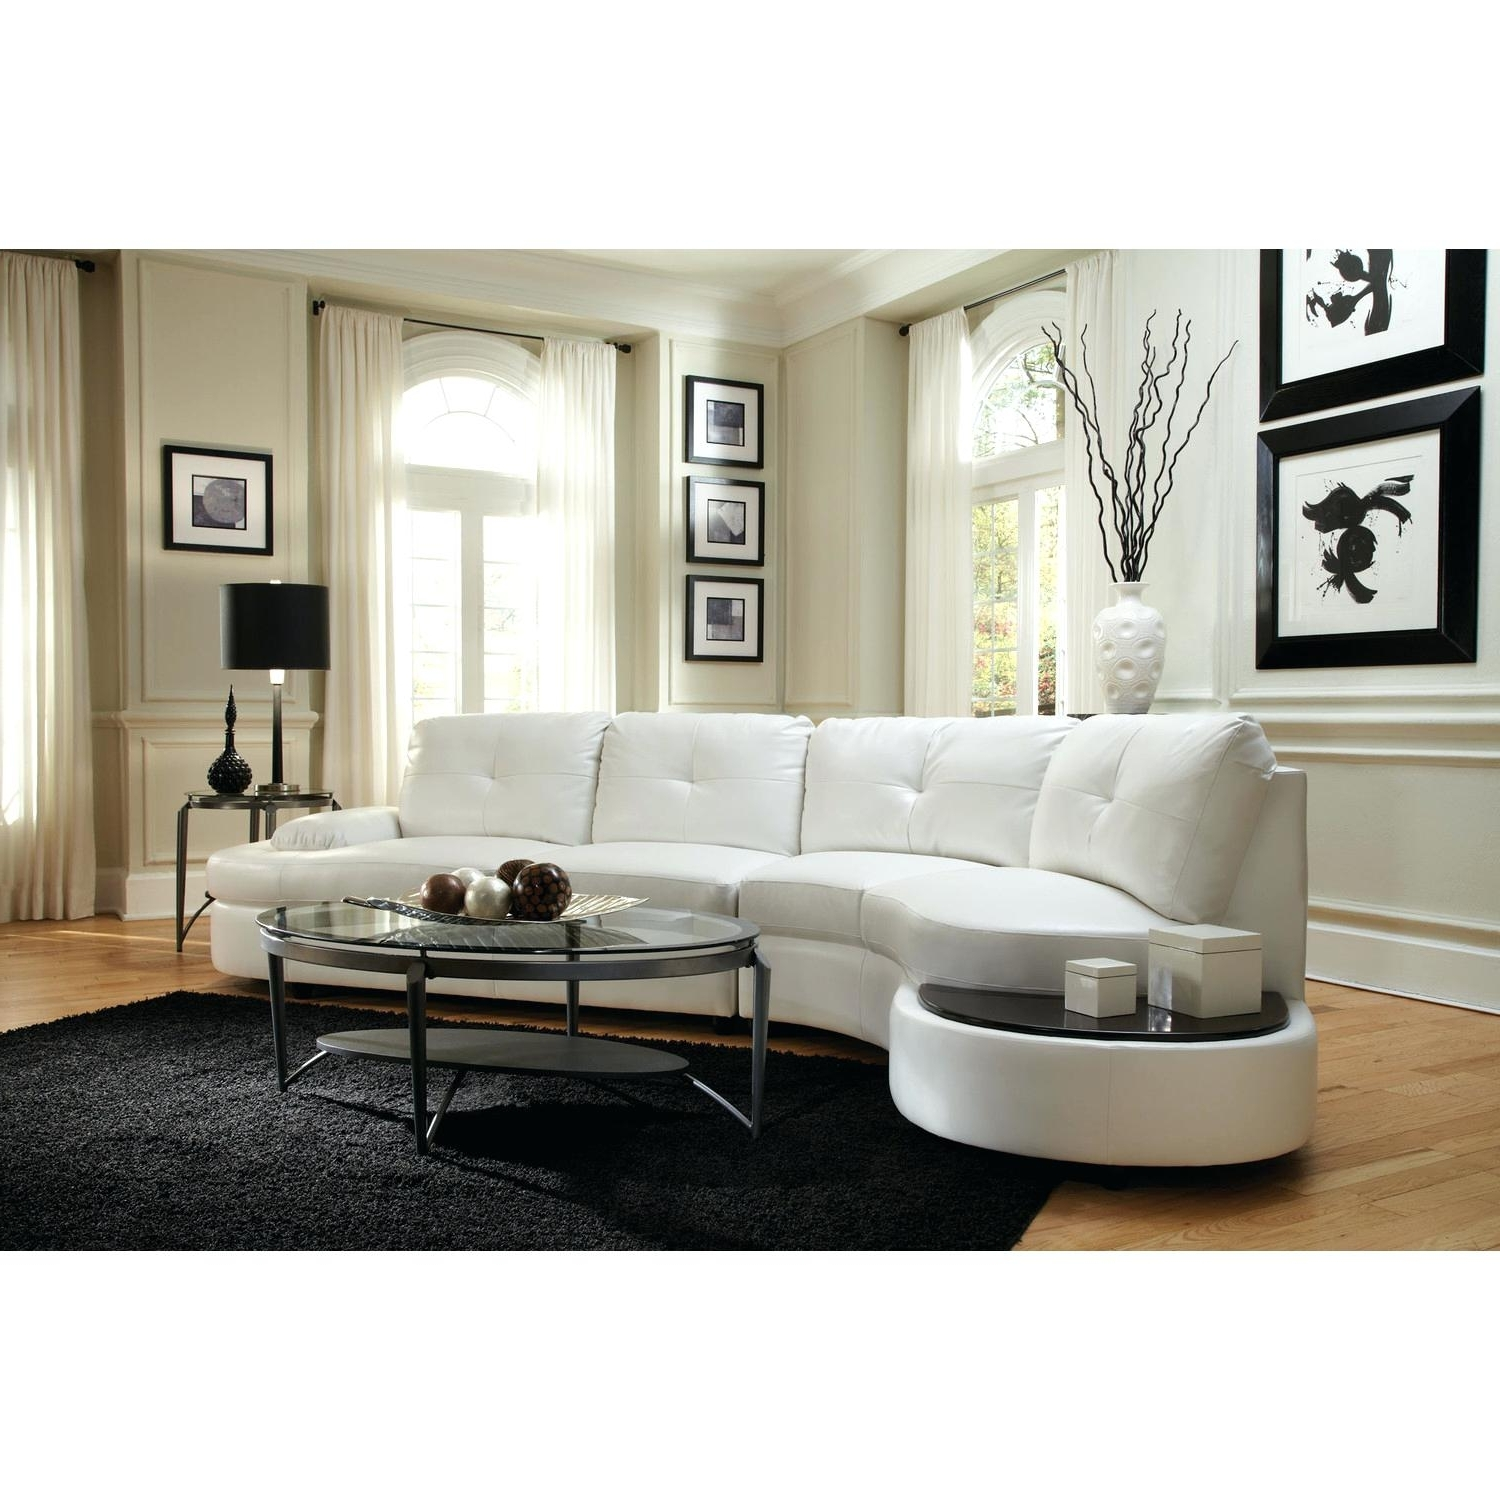 Clubanfi Within Ontario Canada Sectional Sofas (View 2 of 20)